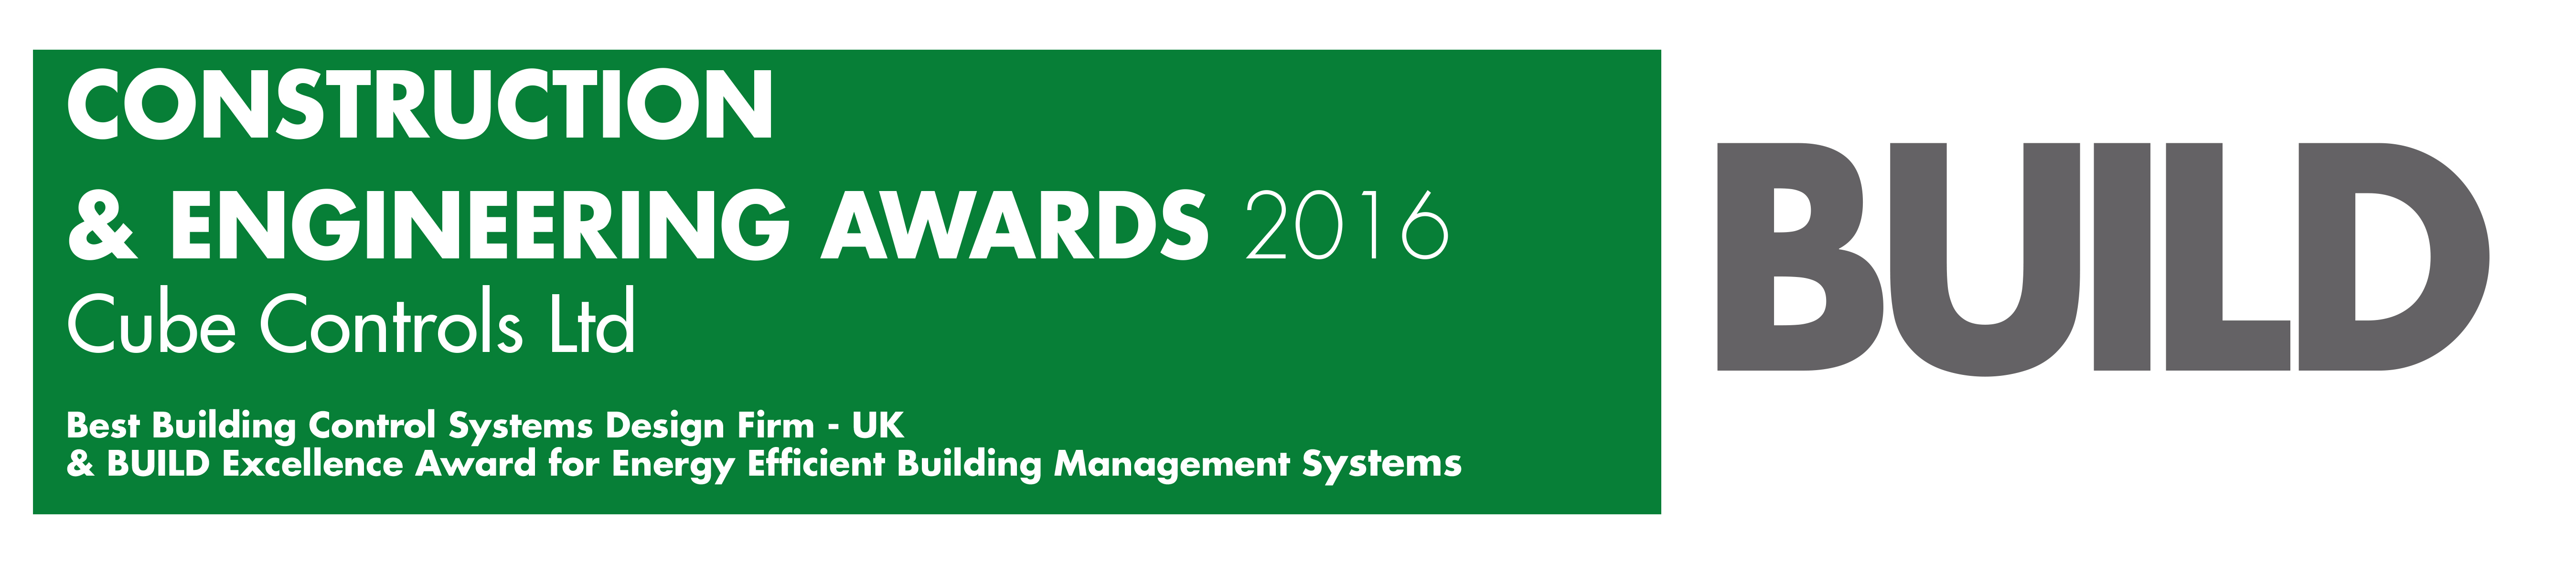 Cube Controls Ltd-Build - Construction & Engineering Awards 2016